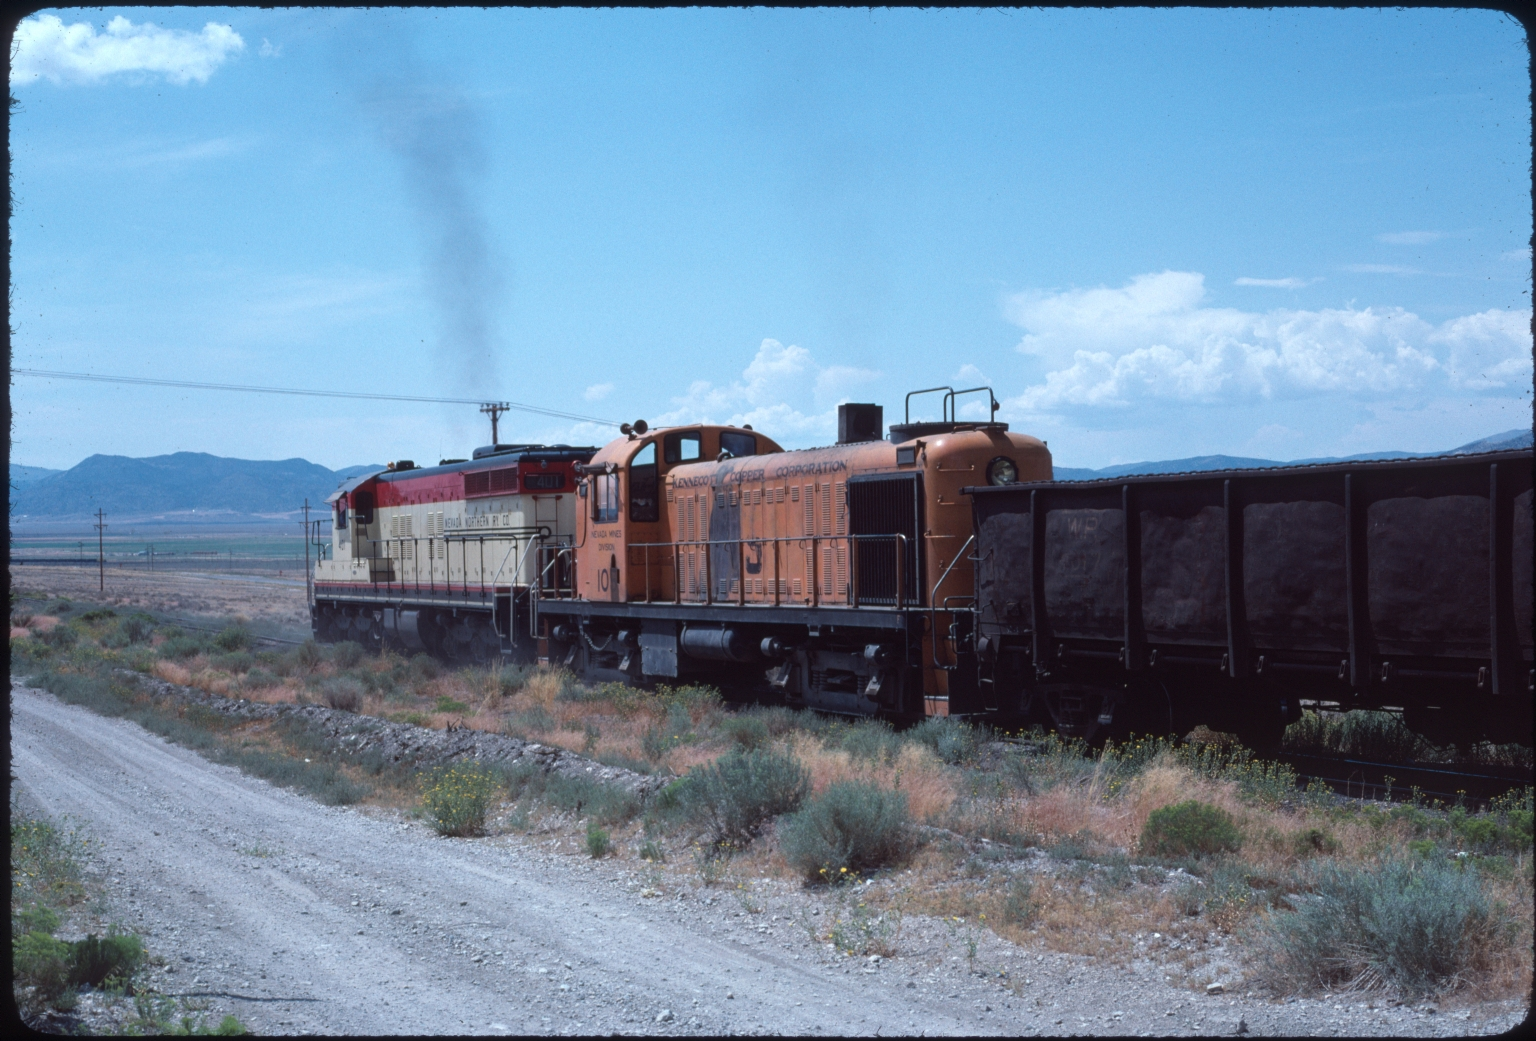 #401 and #109 with Freight